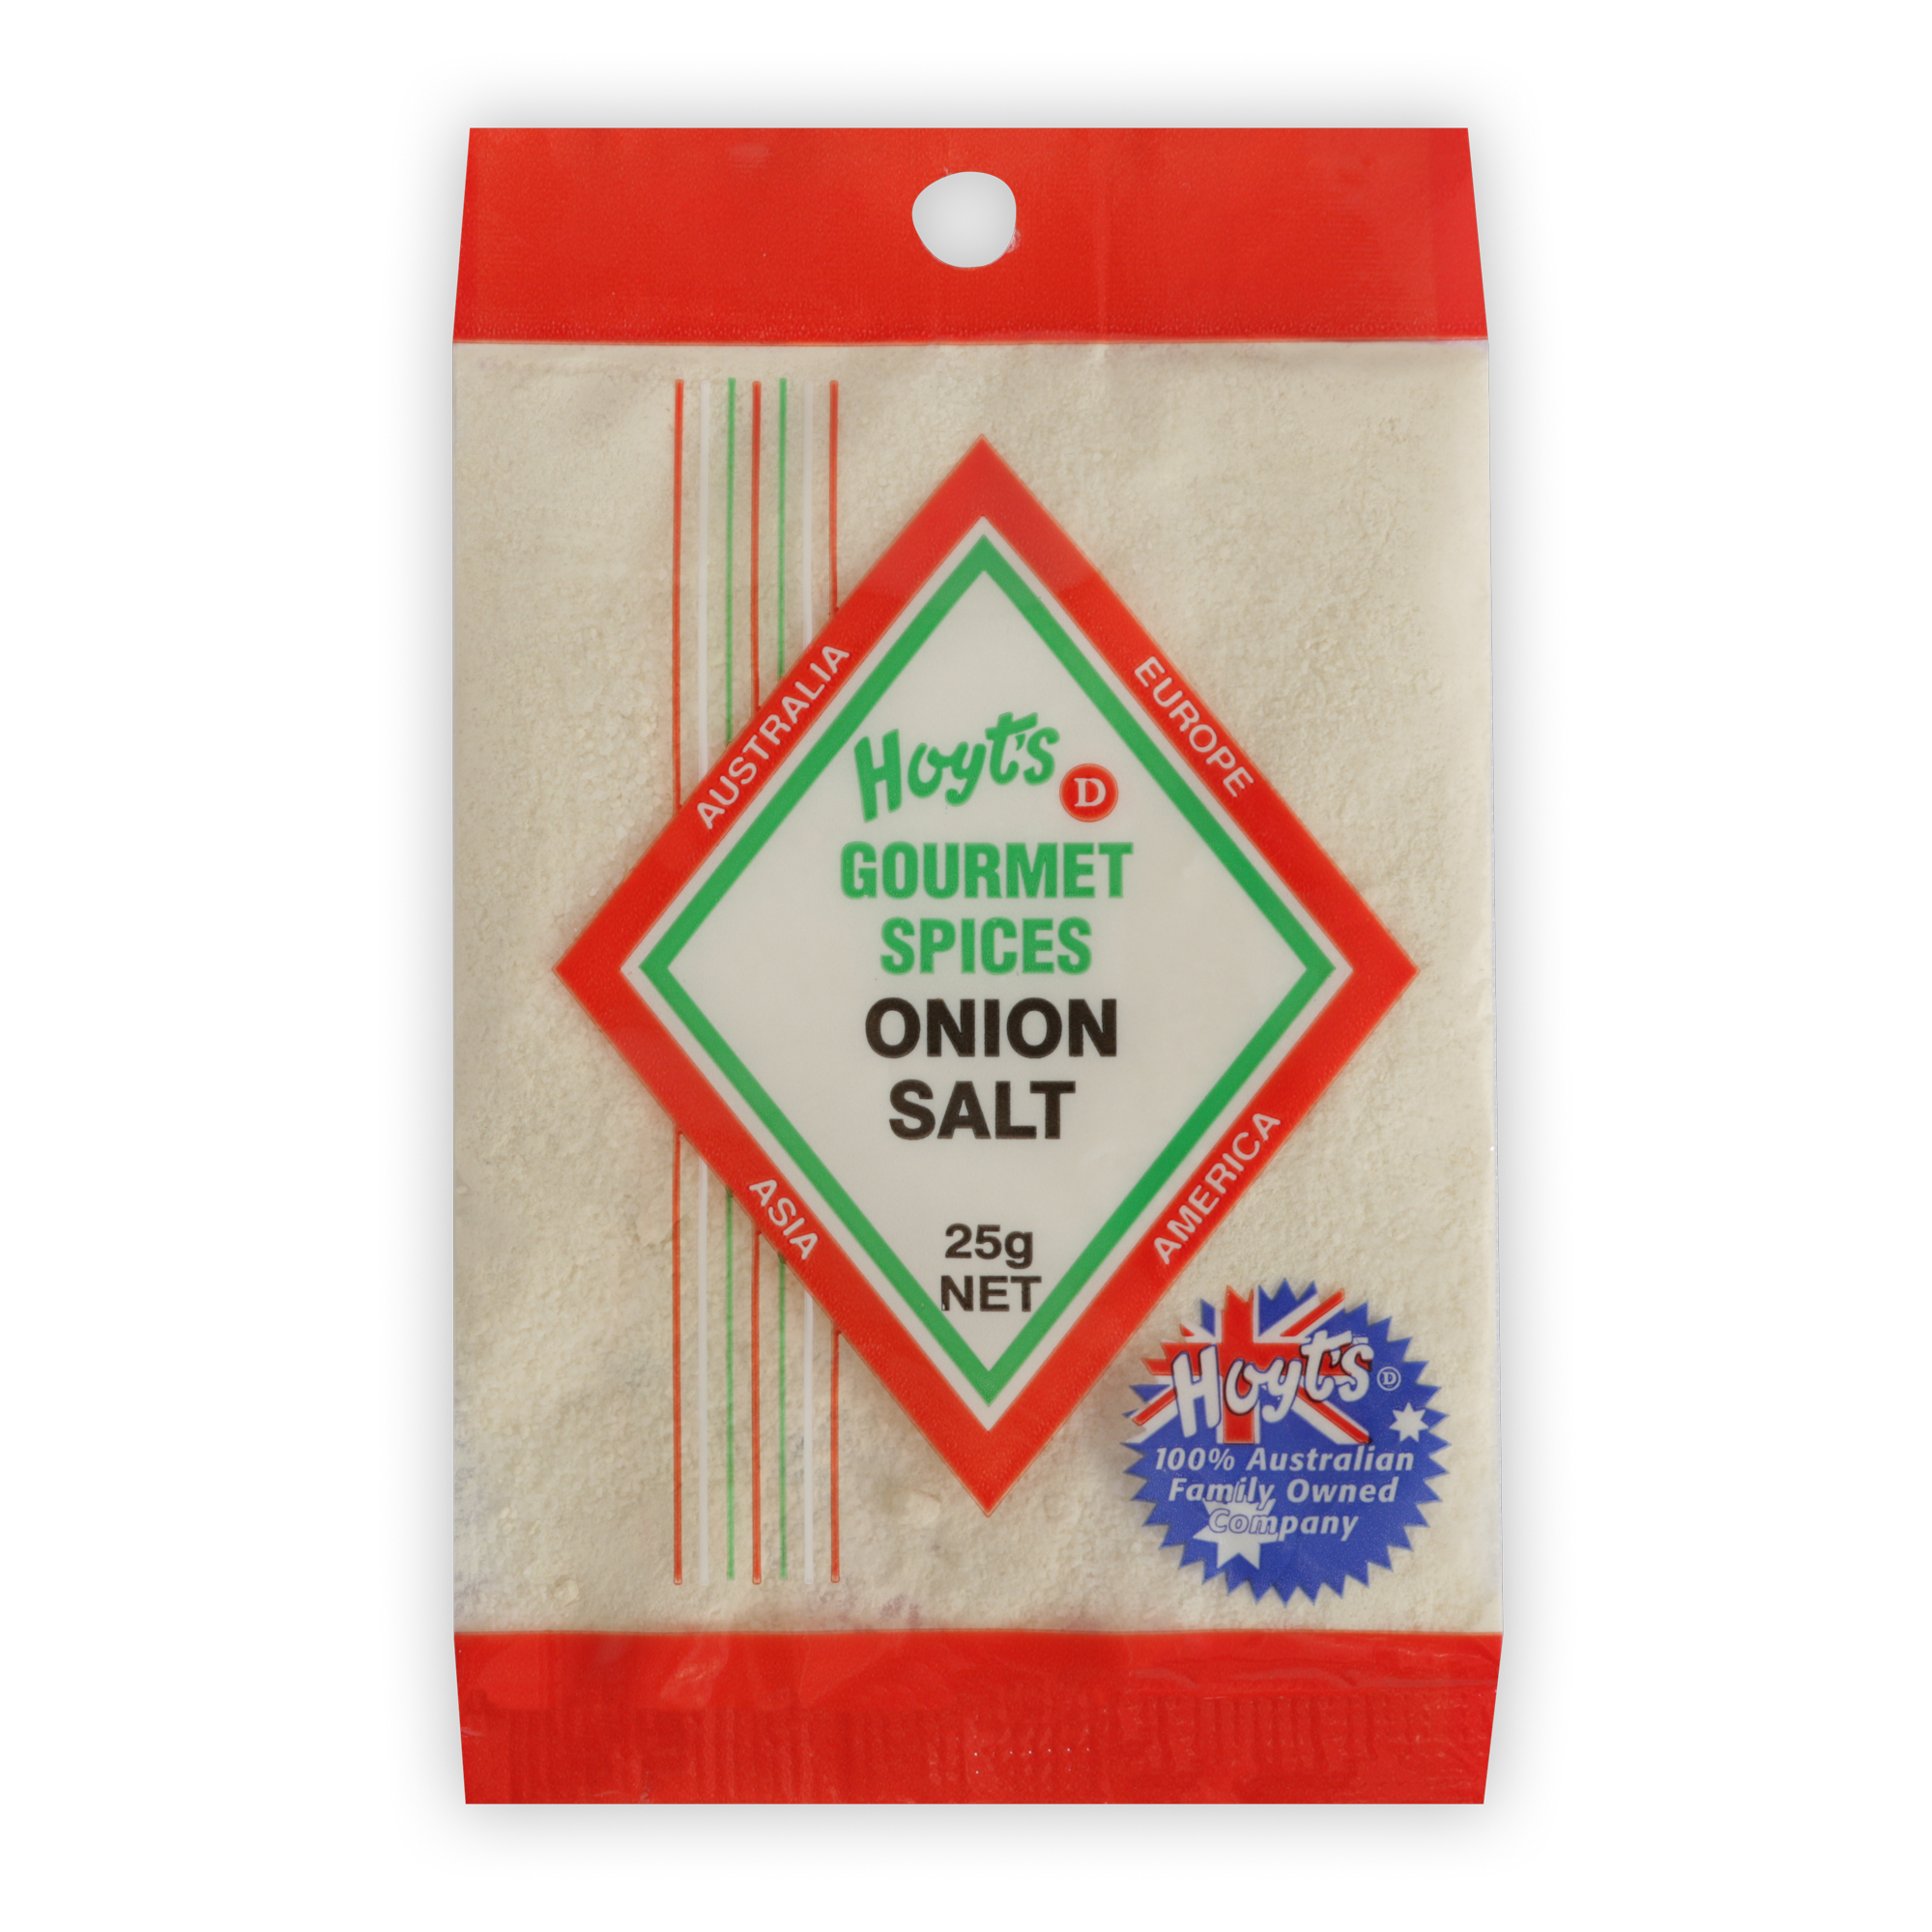 Hoyts Gourmet Onion Salt 15g